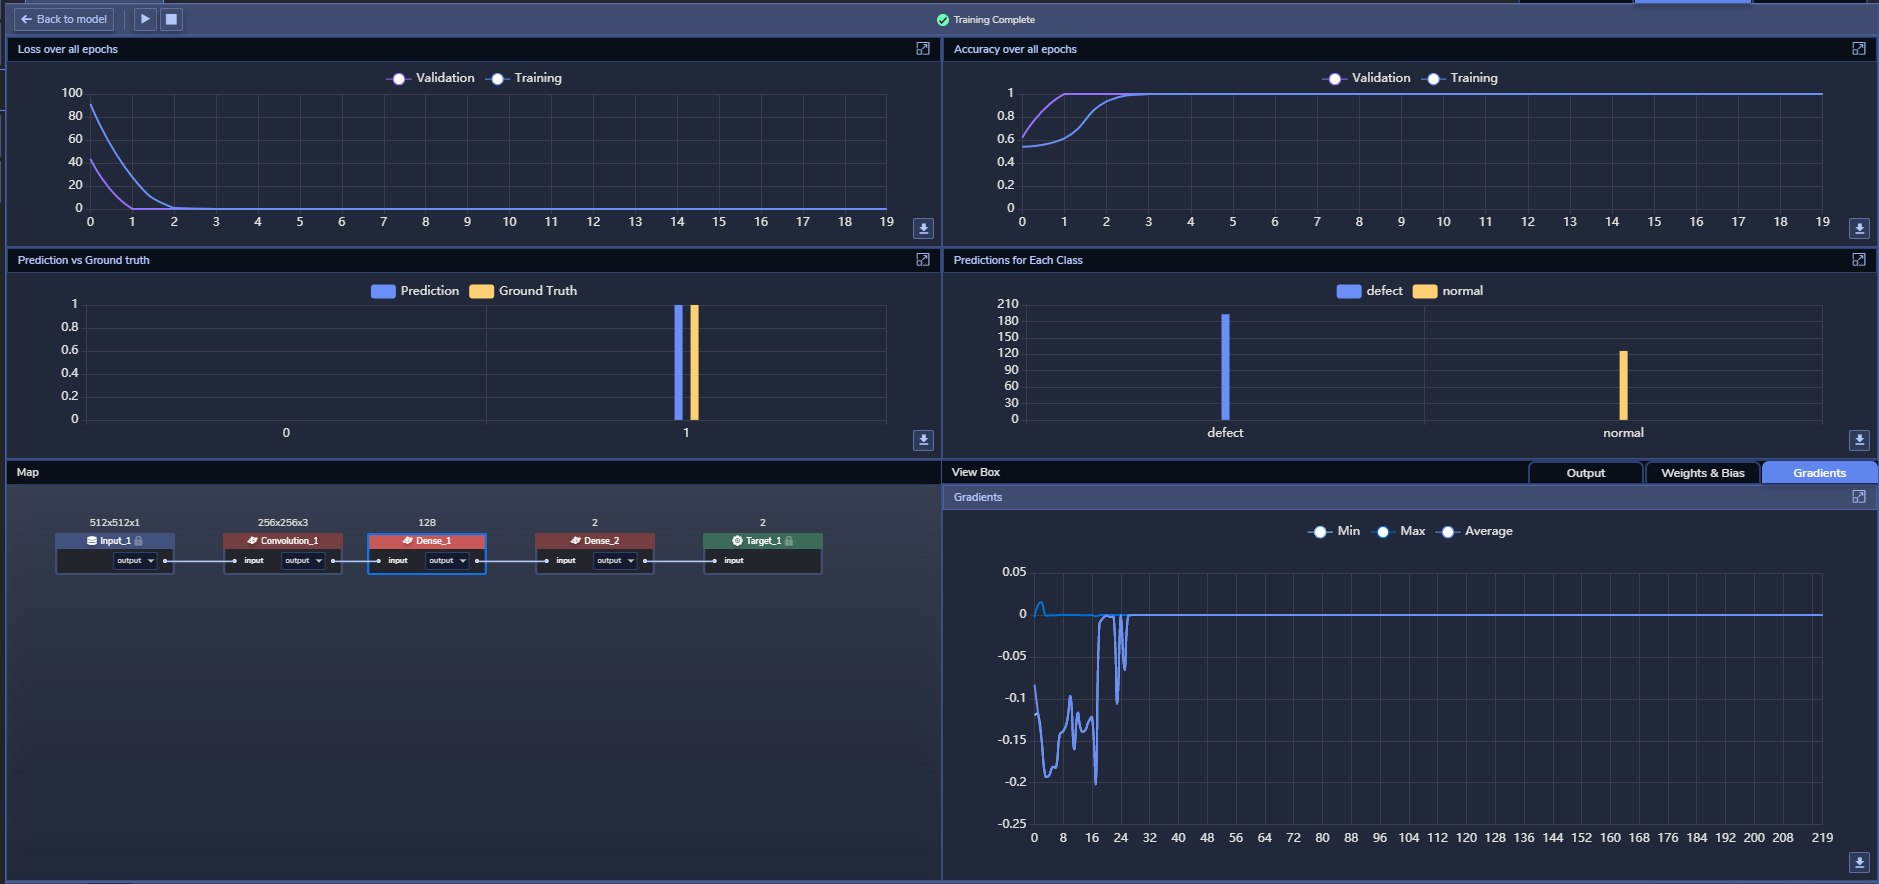 Figure 3: PerceptiLabs' Statistics View during training. The training loss and accuracy are shown in the upper left and right respectively, and the gradients can be seen in the lower-right corner.